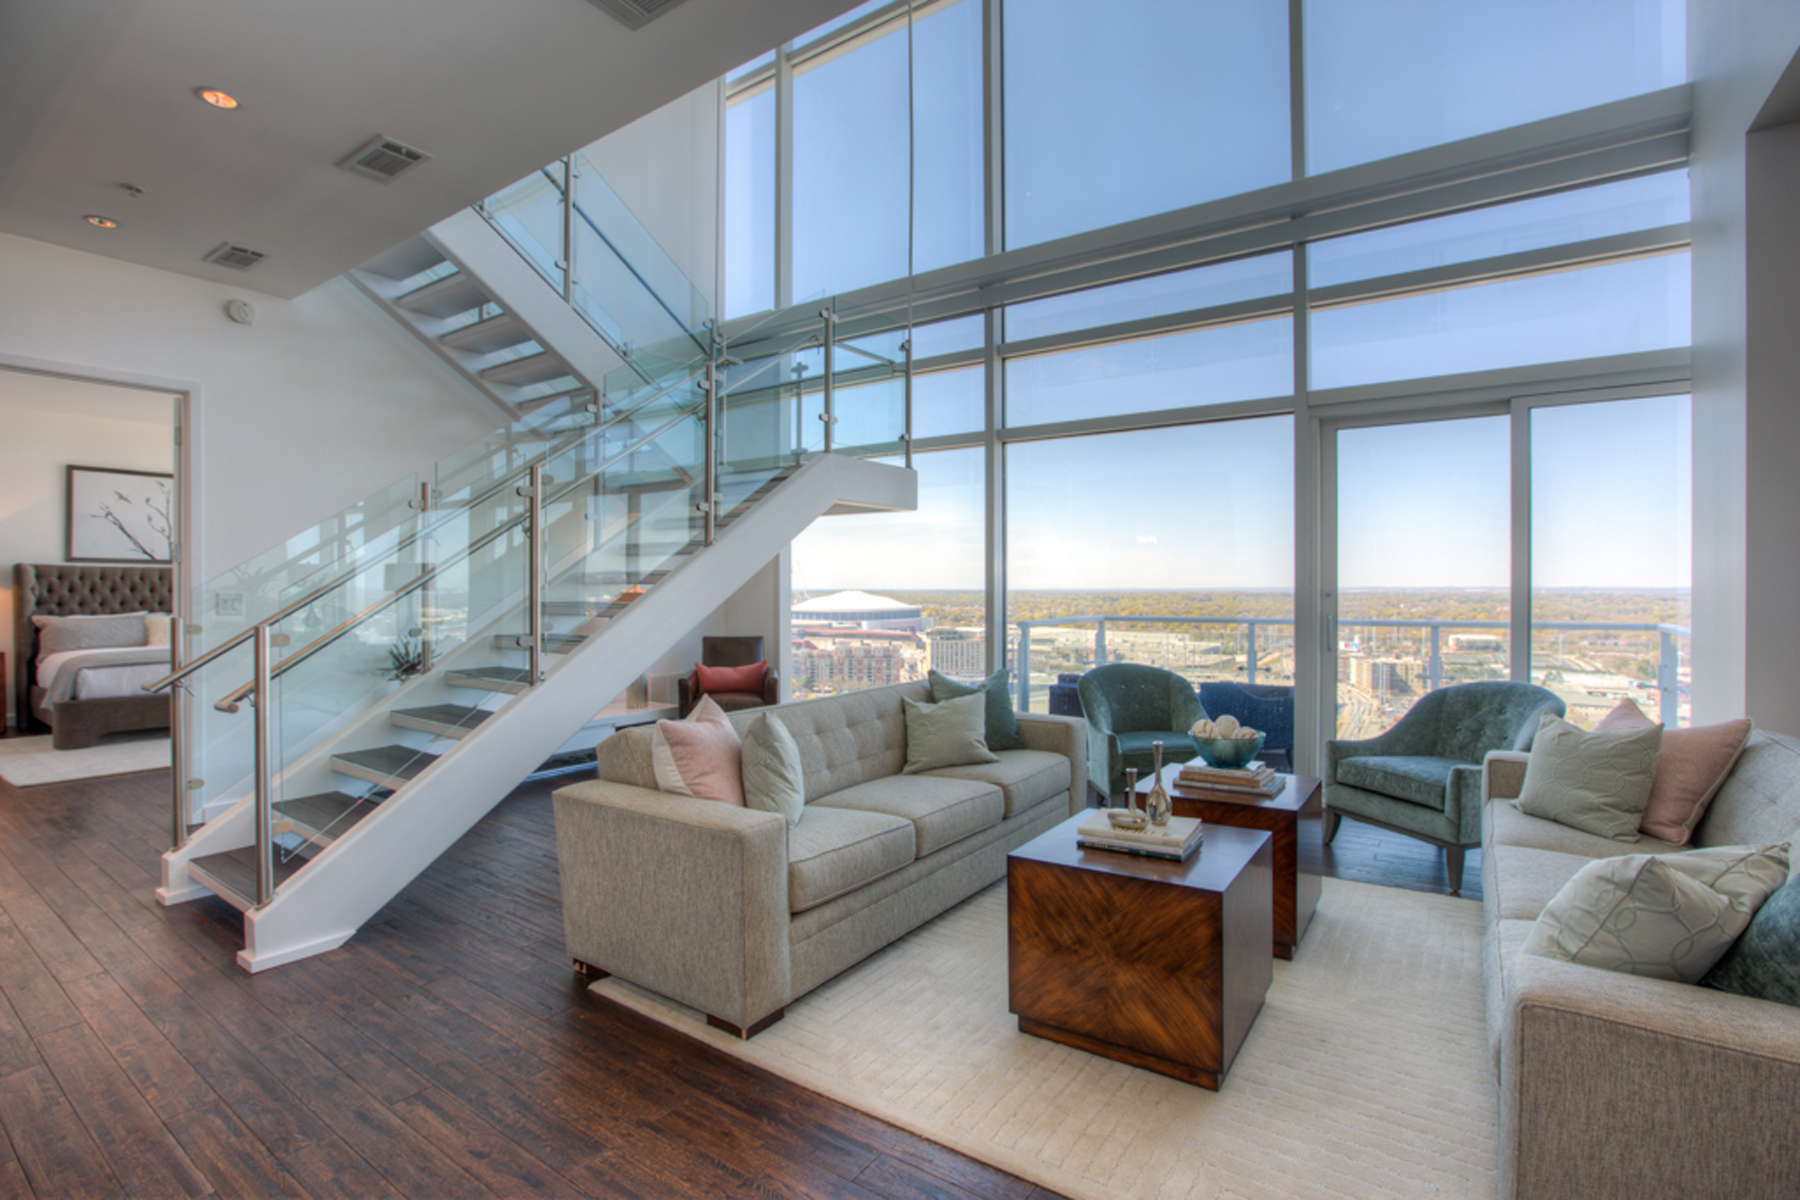 Additional photo for property listing at Spectacular Two Level Atlanta Penthouse With Luxury Hotel Amenities 45 Ivan Allen Jr Boulevard PH#2703 Atlanta, Georgia 30308 Stati Uniti